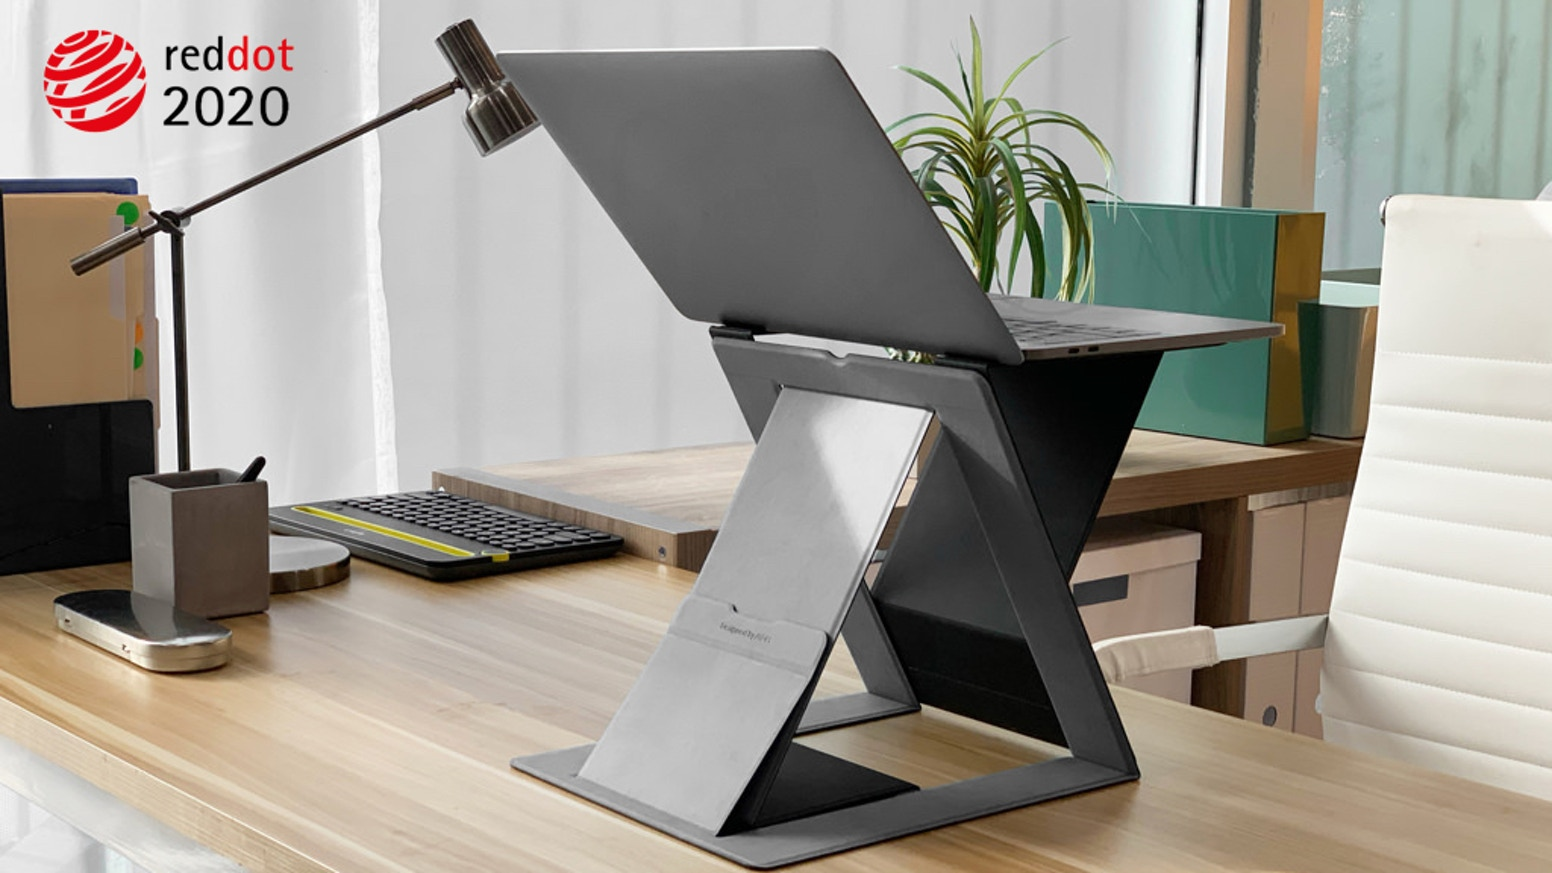 It helps you develop a healthy sit-stand working posture in an easy way, keeping you active and productive all day.